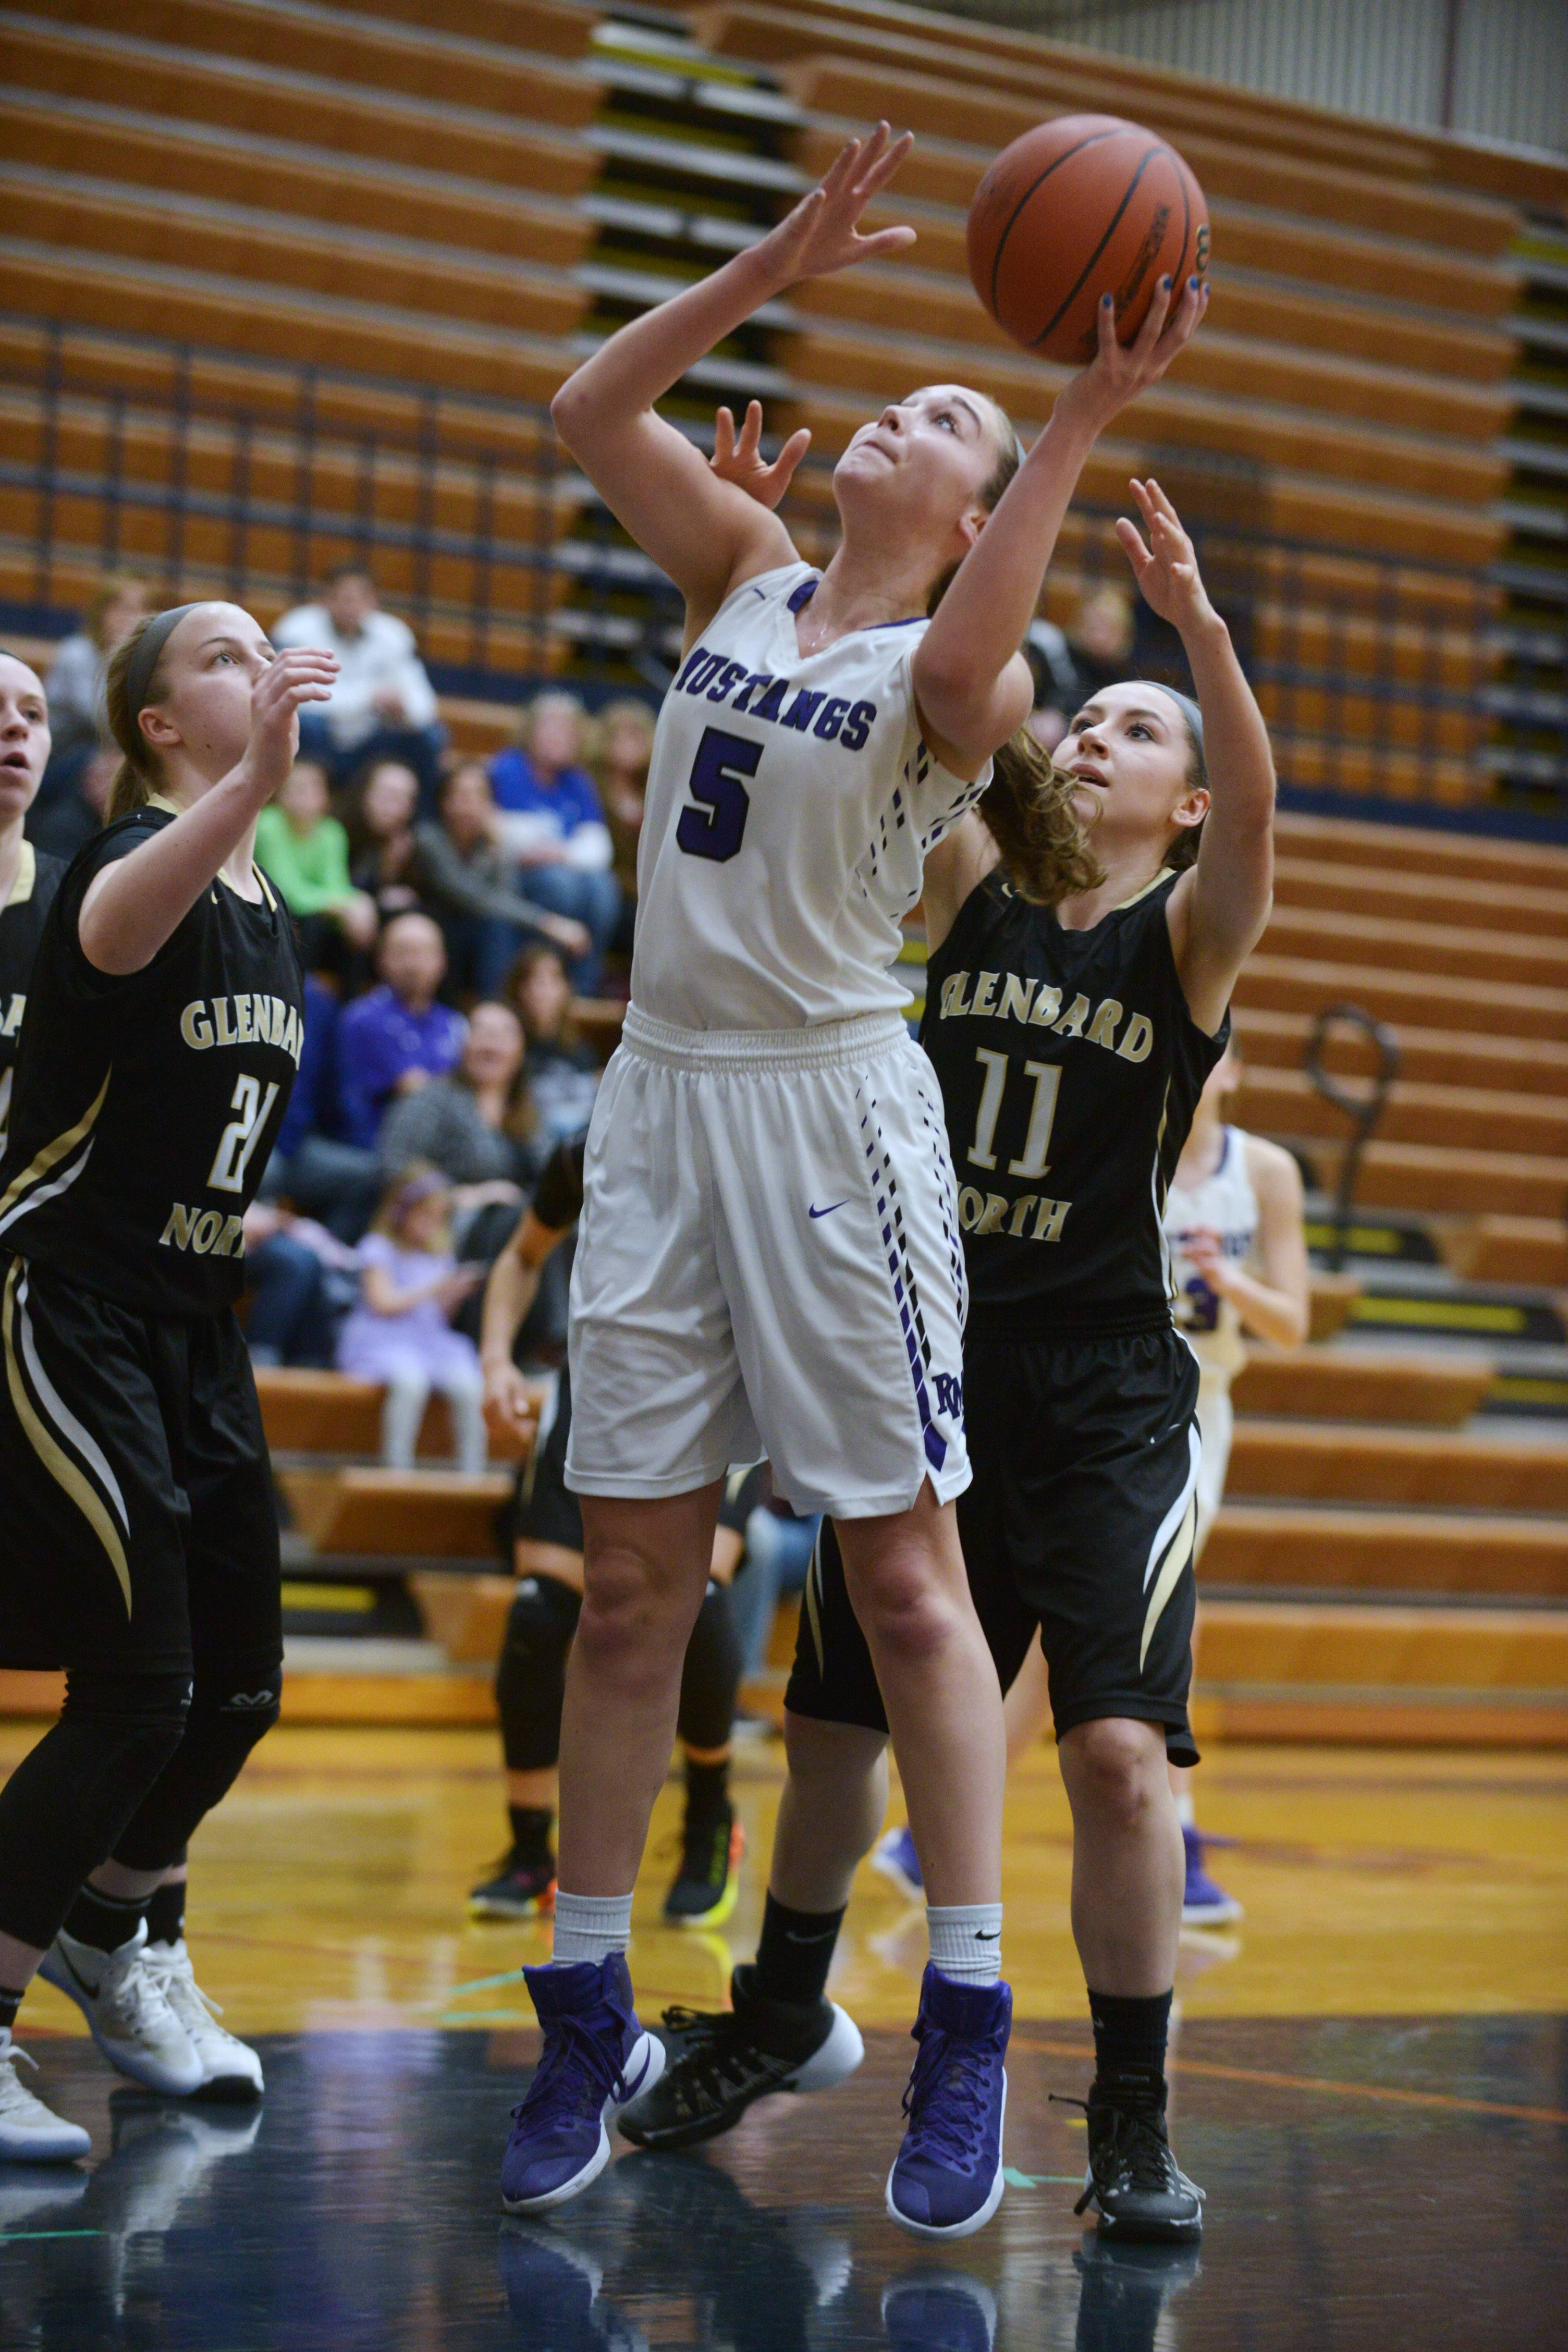 Rolling Meadows' Kara Spiwak, middle, shoots between Glenbard North's Leah Miller, left, and Kayla Quanstrum during the Conant regional semifinal Tuesday.